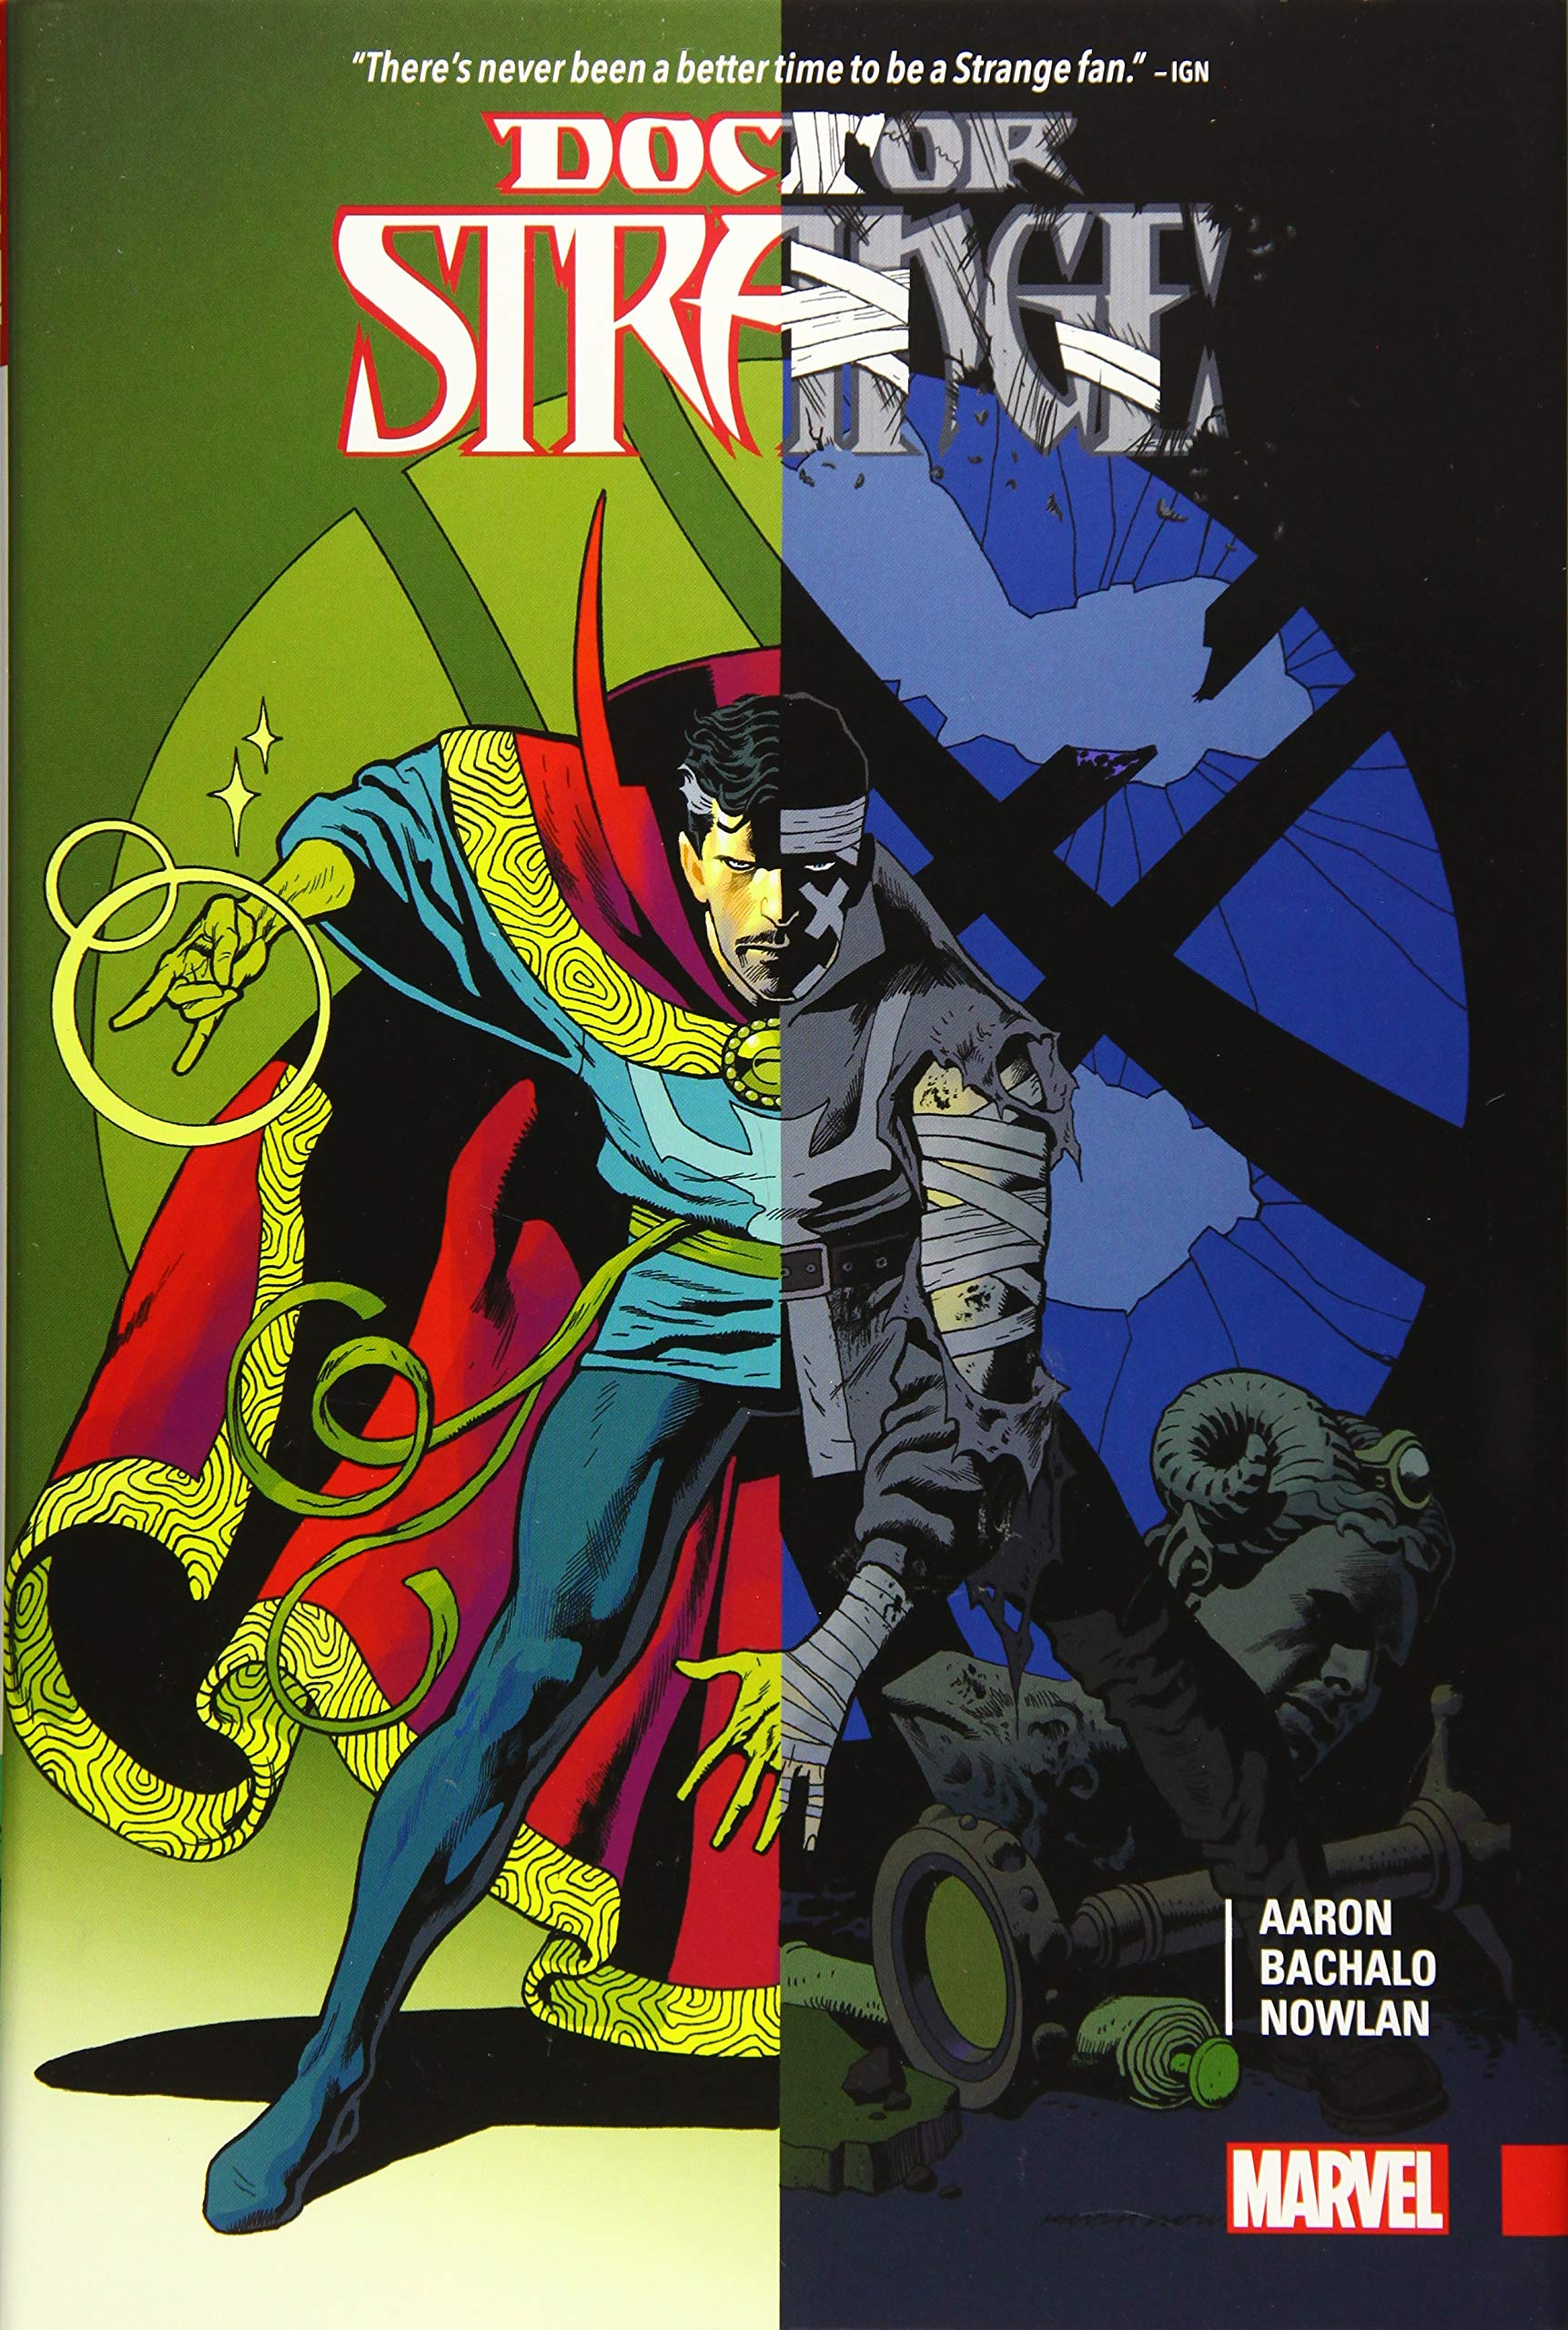 FAST SHIPPING!! DOCTOR STRANGE #11 BY MARVEL COMICS